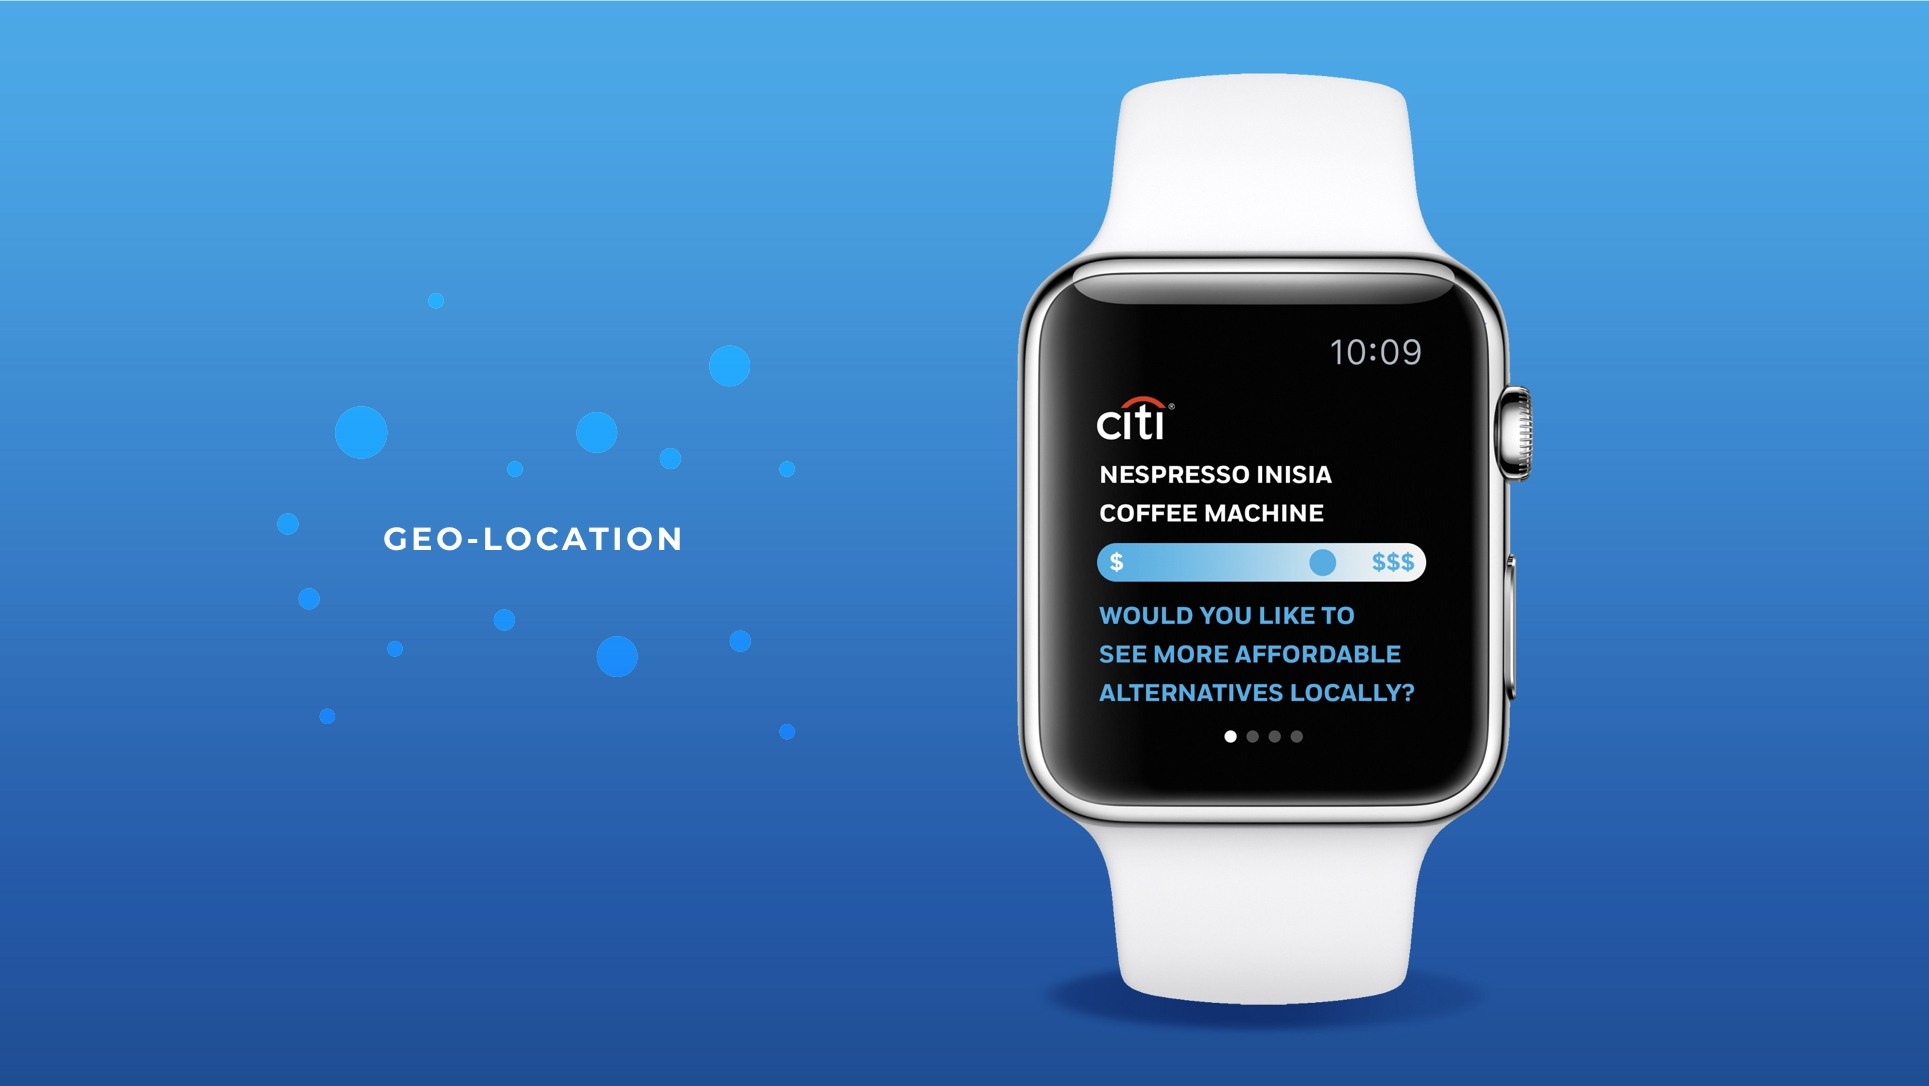 Apple smart watch with Citi Bank mobile app on screen